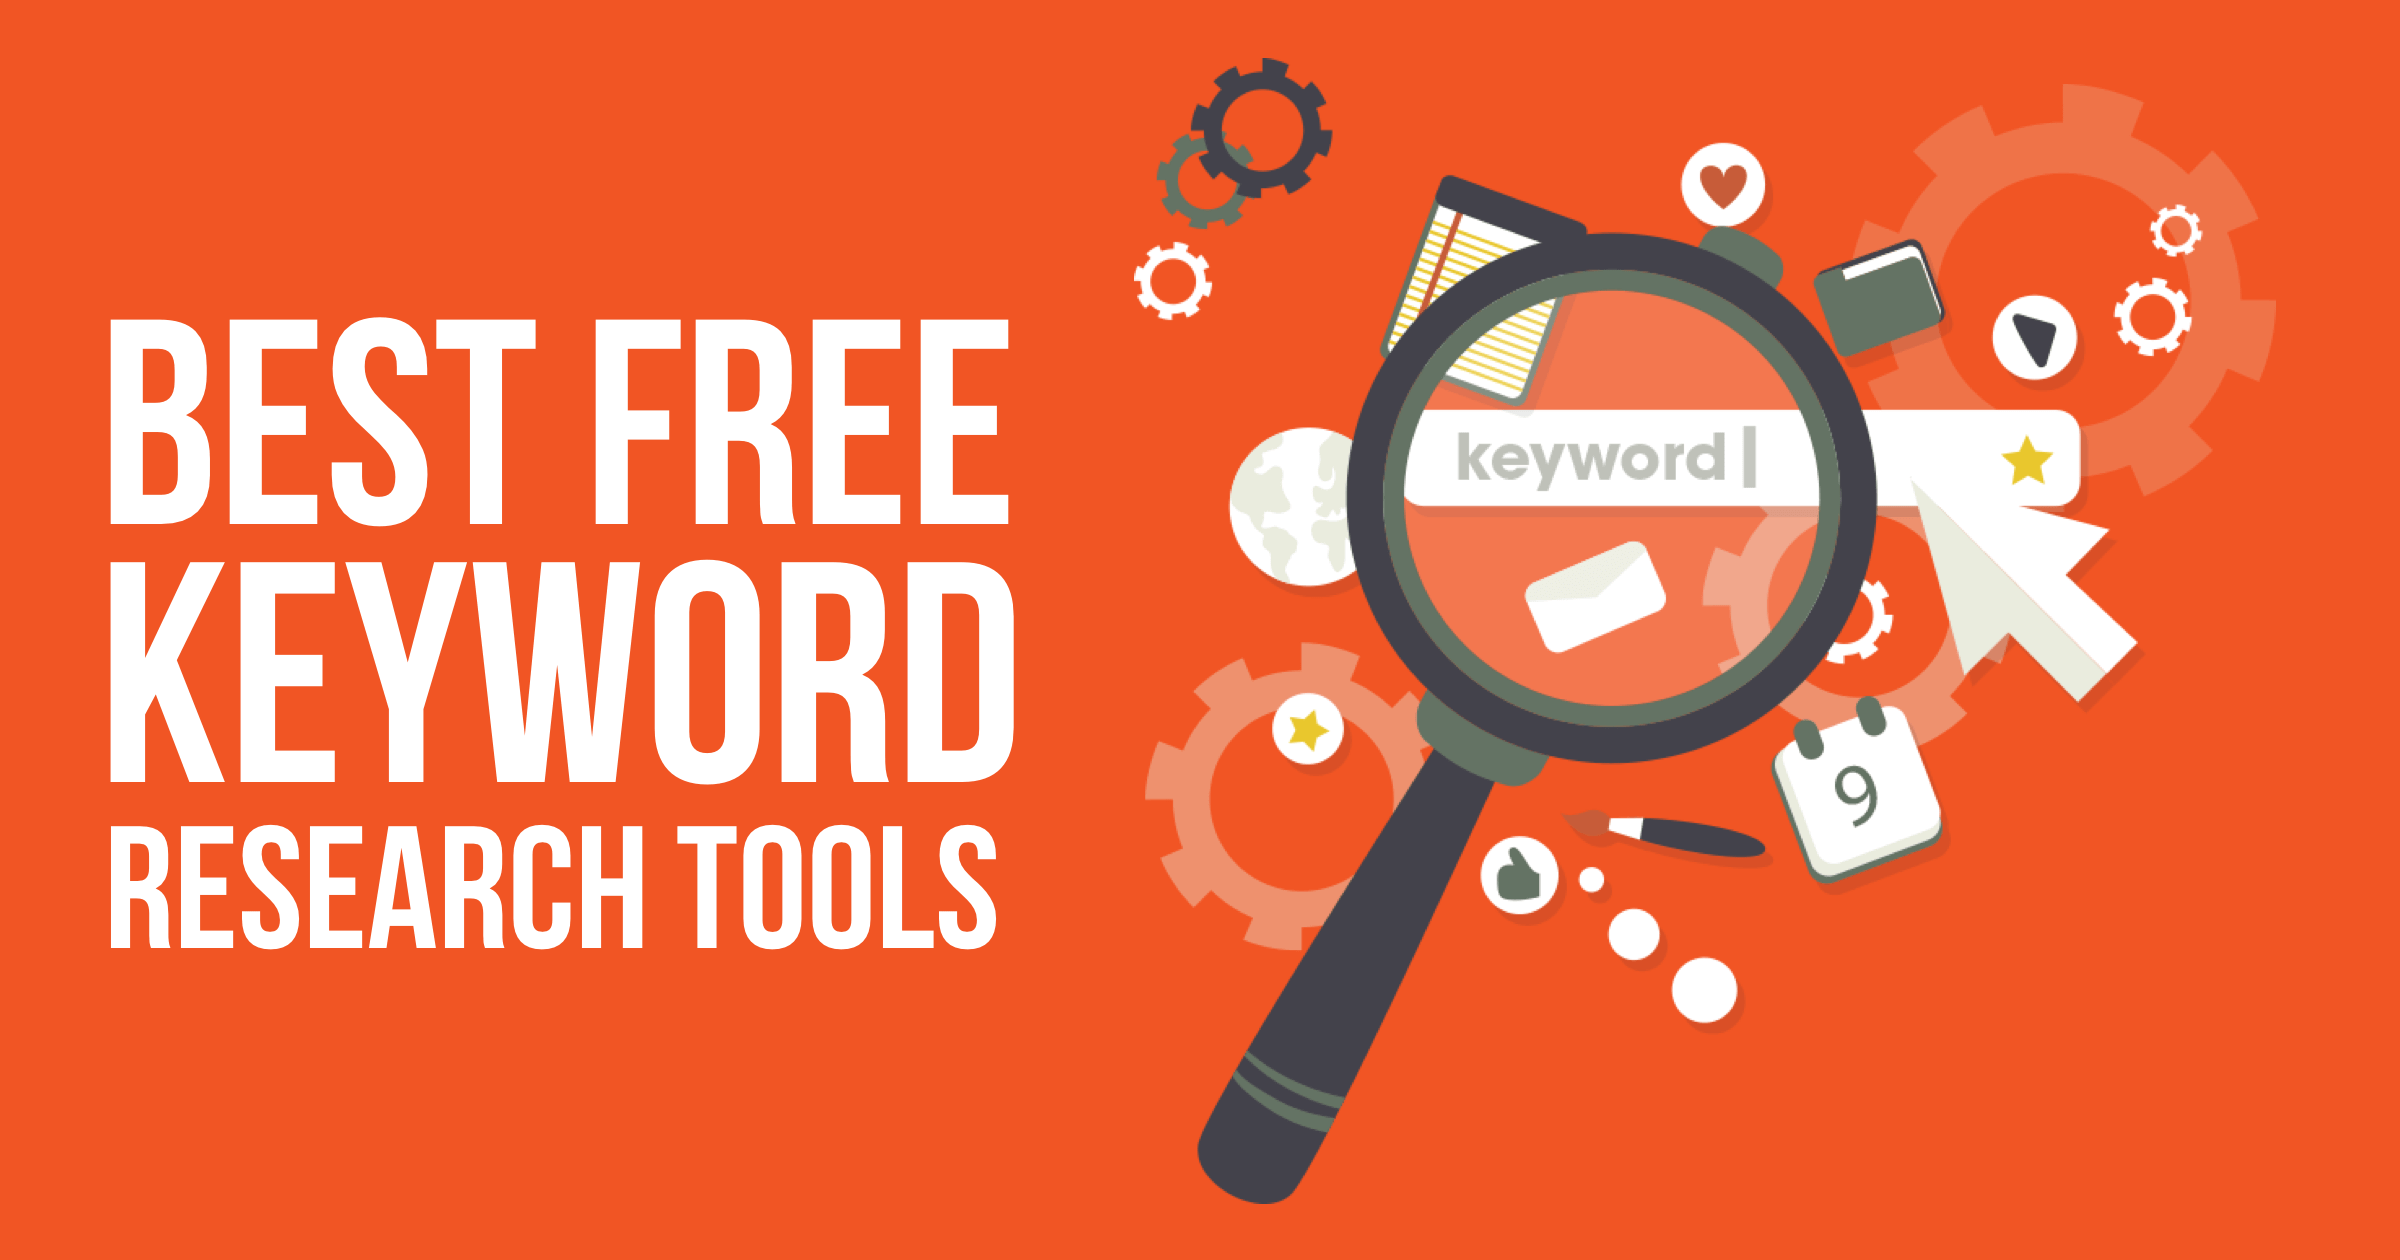 Best-Free-Keyword-Research-Tools Free keyword research tool